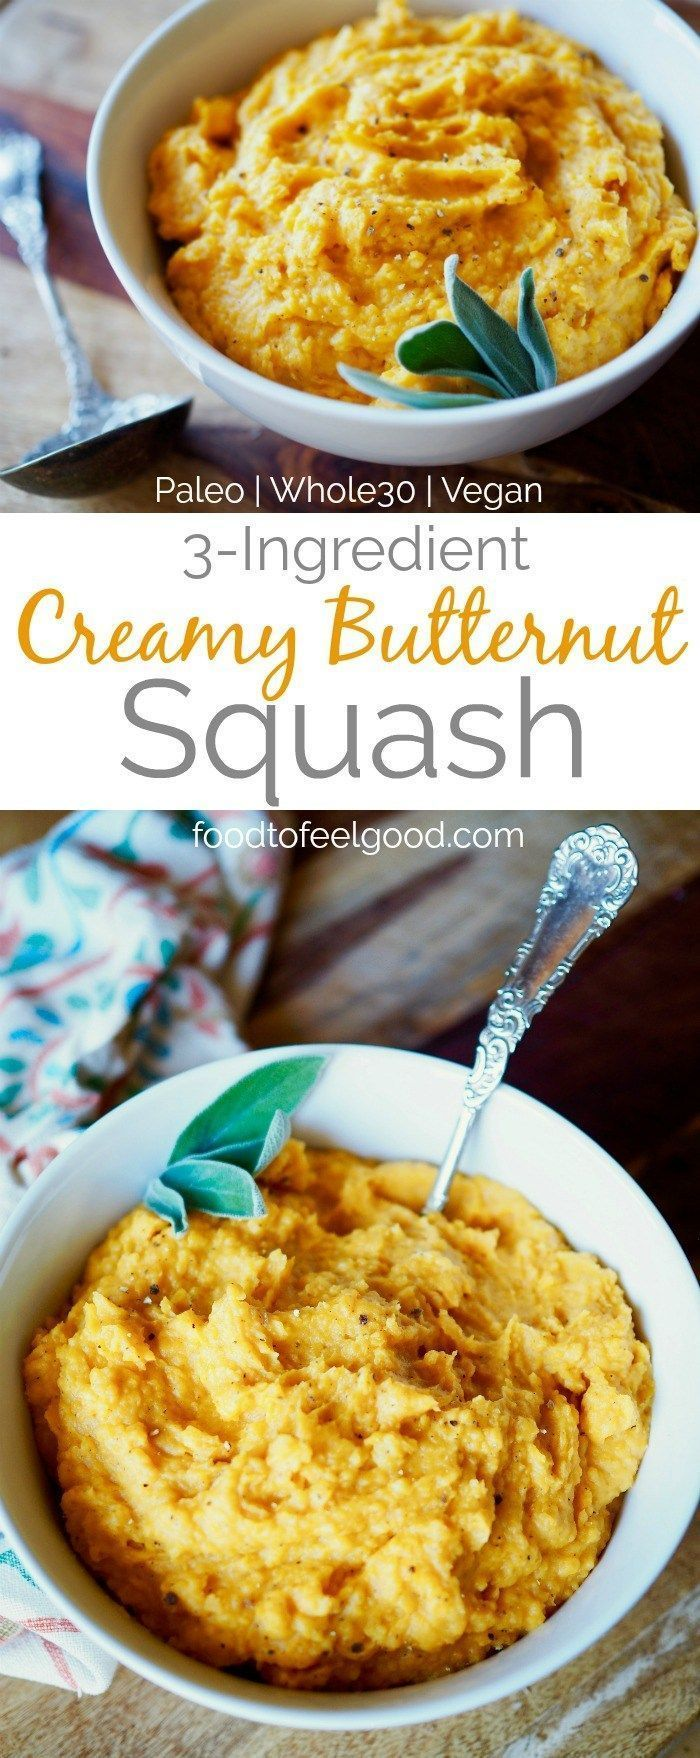 3-Ingredient Creamy Butternut Squash   Paleo   Vegan   Whole30   A healthy recipe for the holidays